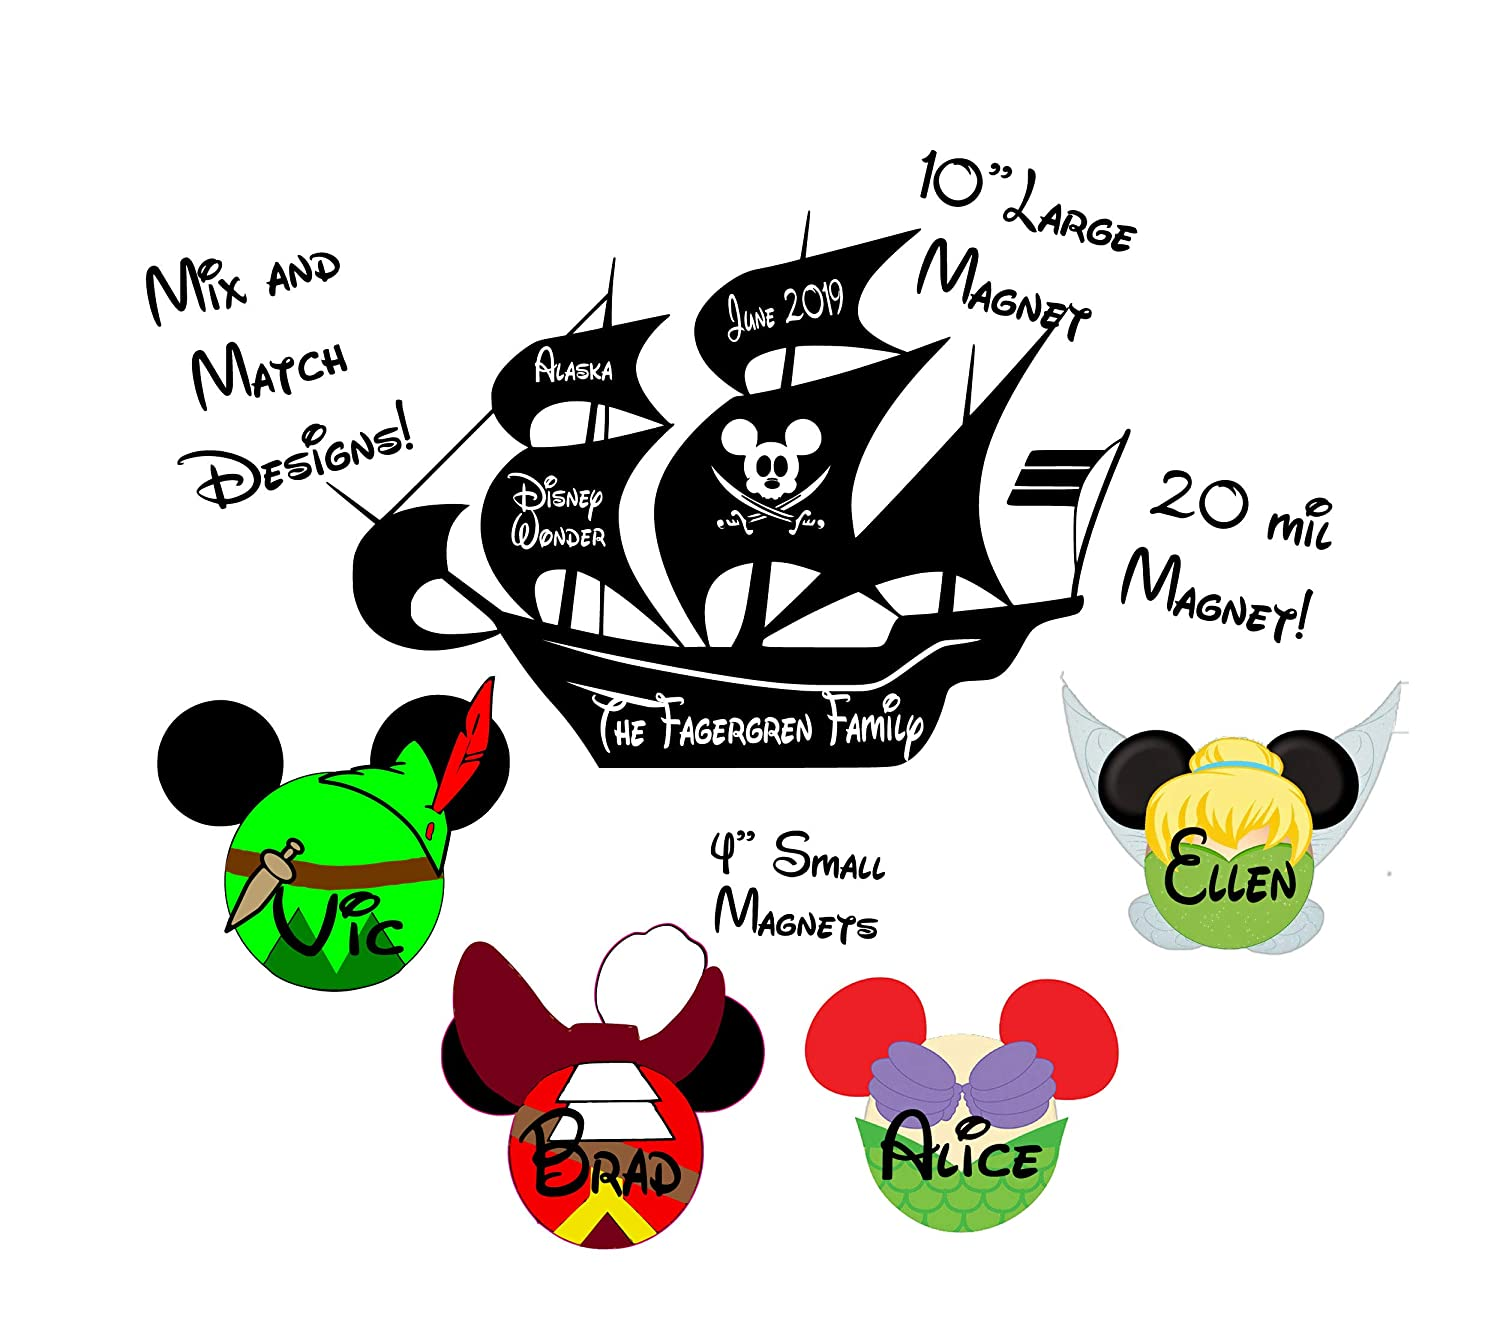 Personalized Door Magnet Sign Custom Pirate Ship Cruise Magnet